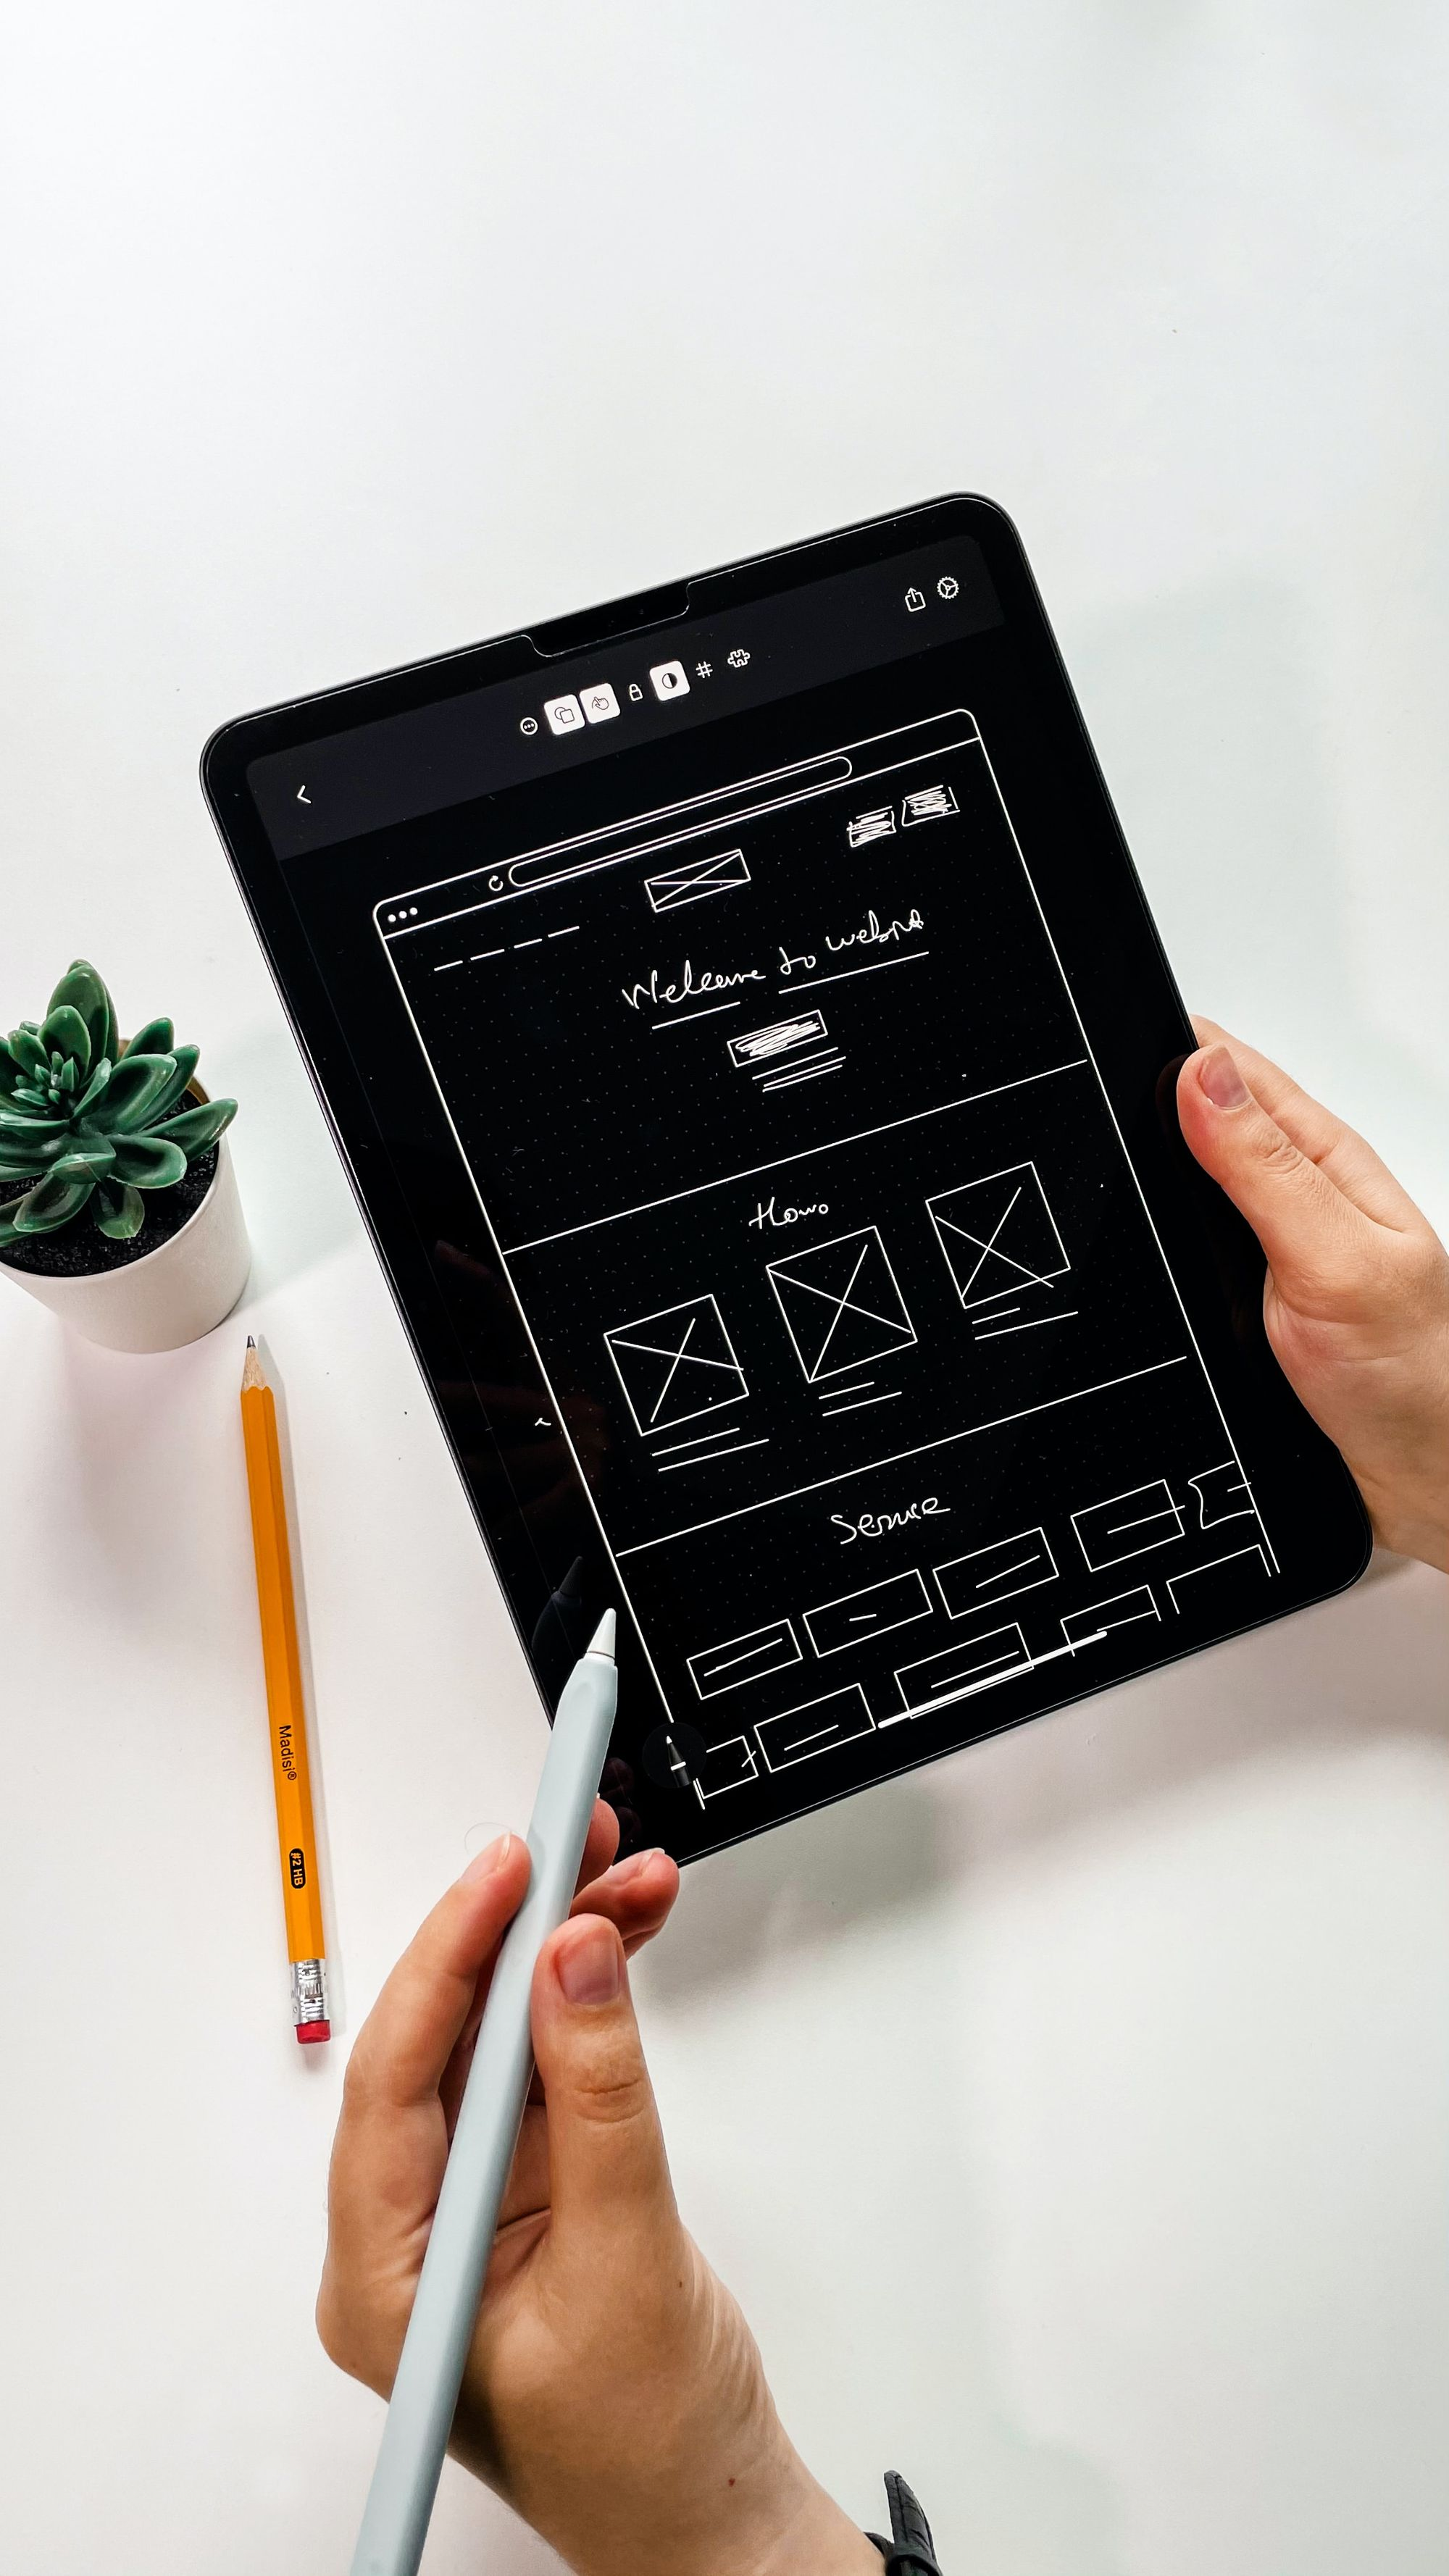 A person sketching out a website wireframe on a tablet with a gray stylus.